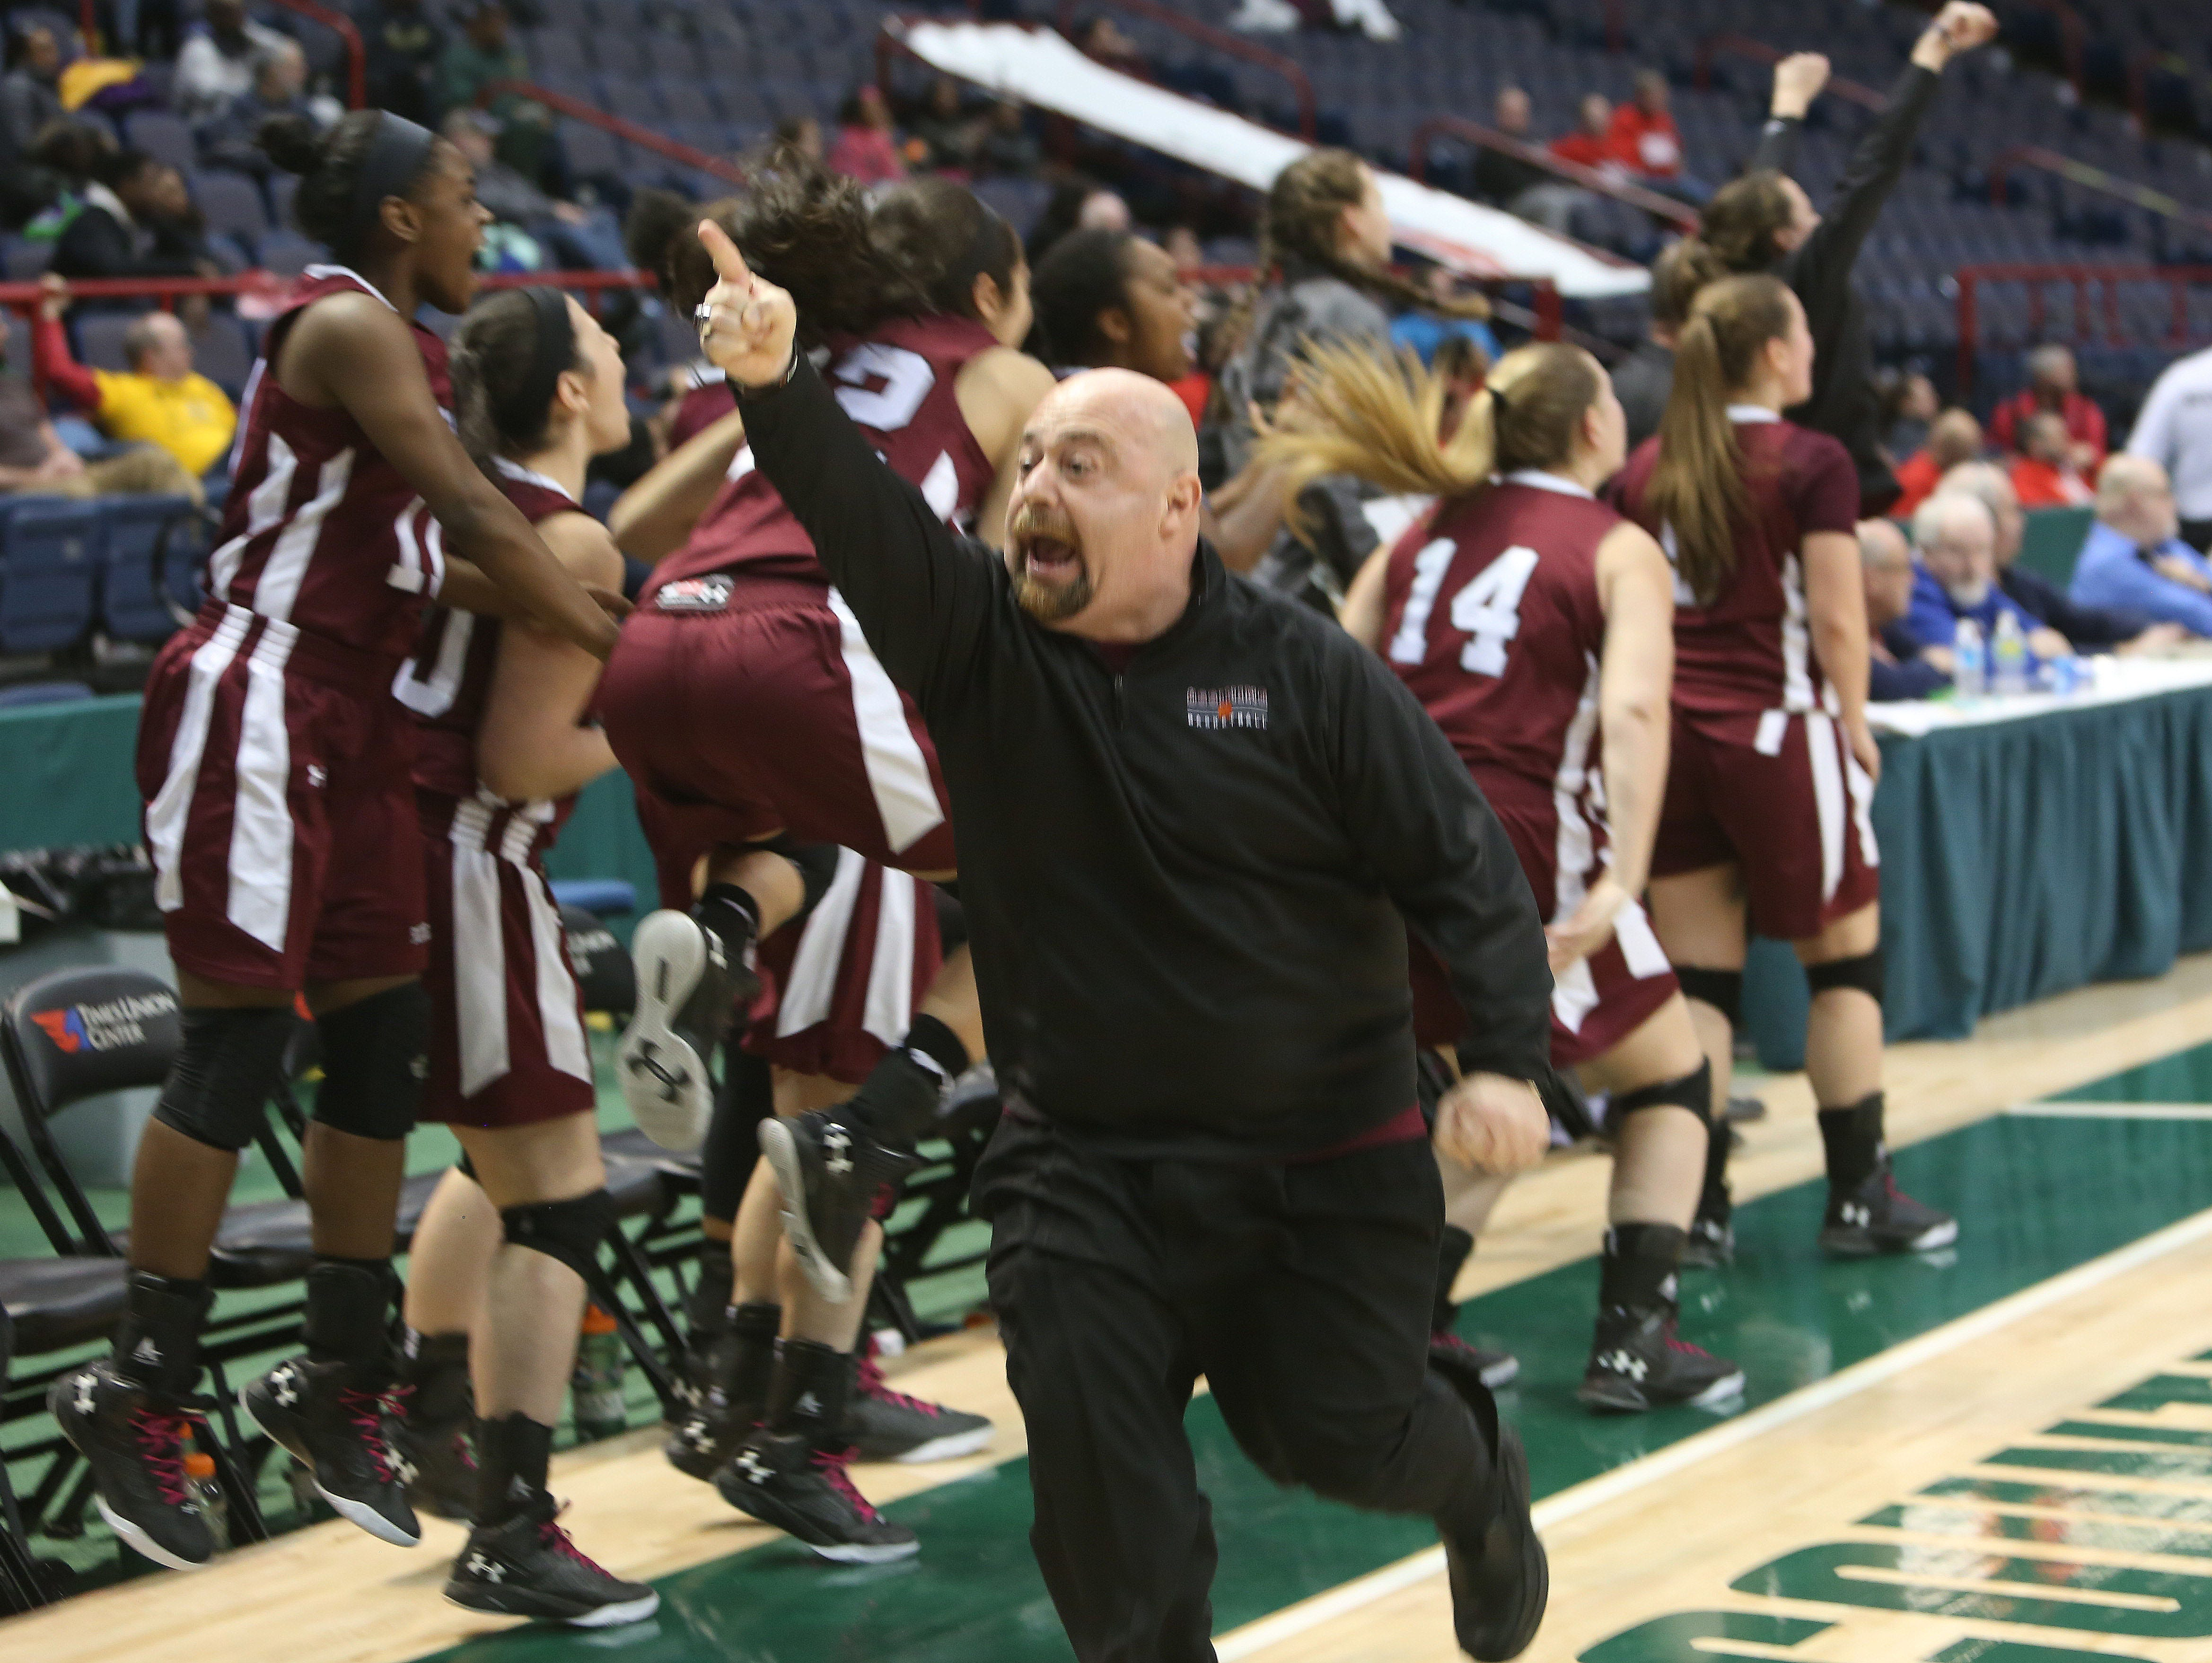 Ossining coach Dan Ricci and his team celebrate a basket late in the game against Long Island Lutheran in the girls Class A final of the New York State Federation Tournament of Champions at the Times Union Center in Albany March 18, 2016.